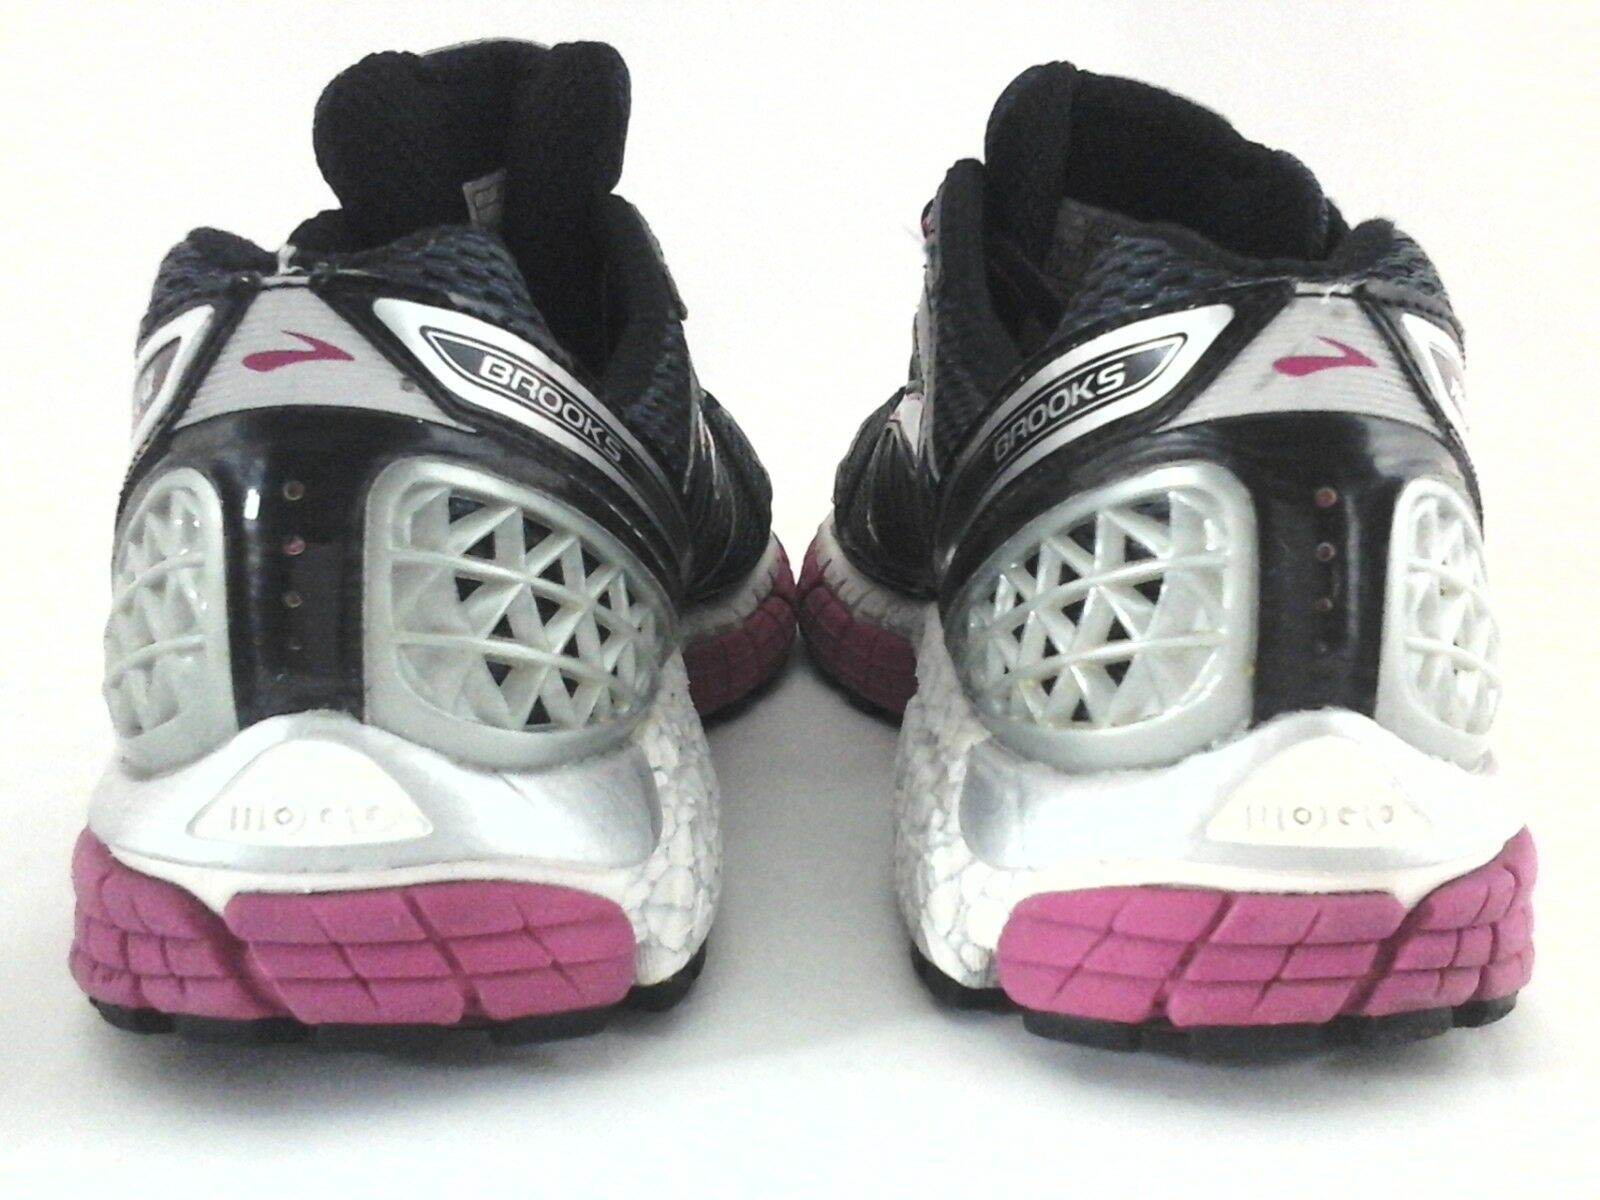 BROOKS Trance 12 Sneakers DNA Running Schuhes Gray/Pink Sneakers 12 Damenschuhe US 9.5 EU 41 149 e24611